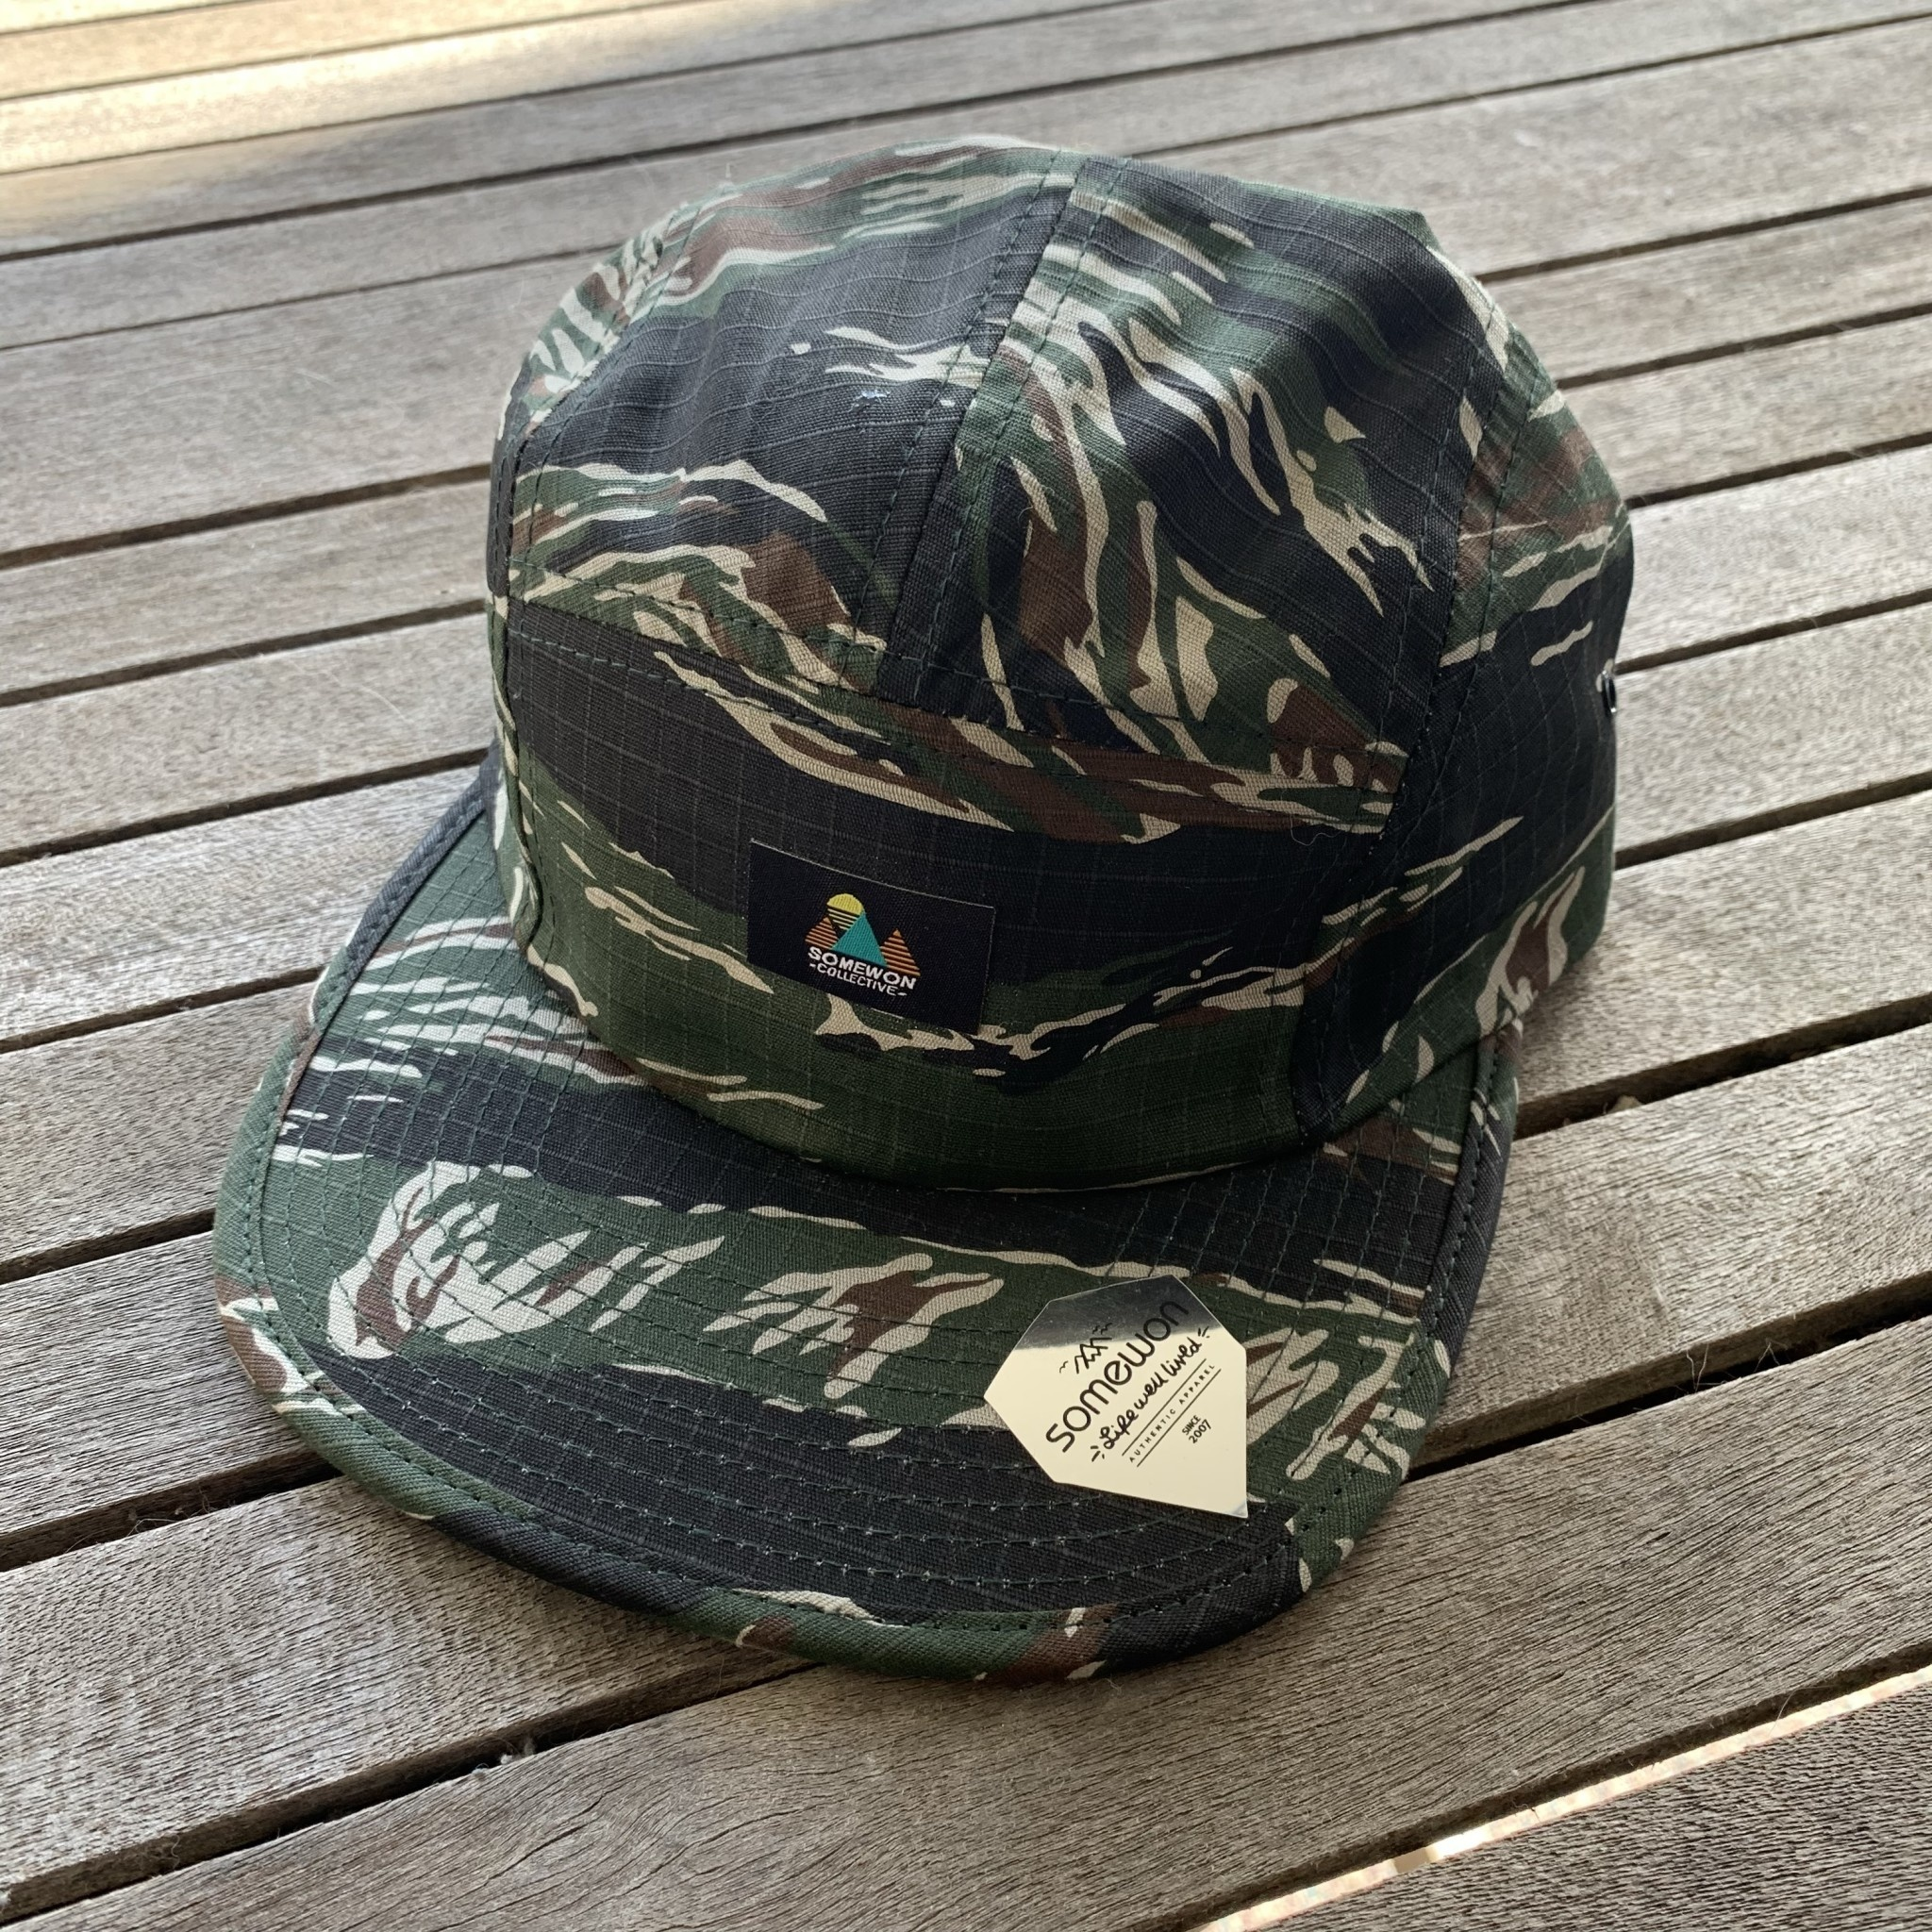 SomewonCollective - Wearabouts Hat - Camo